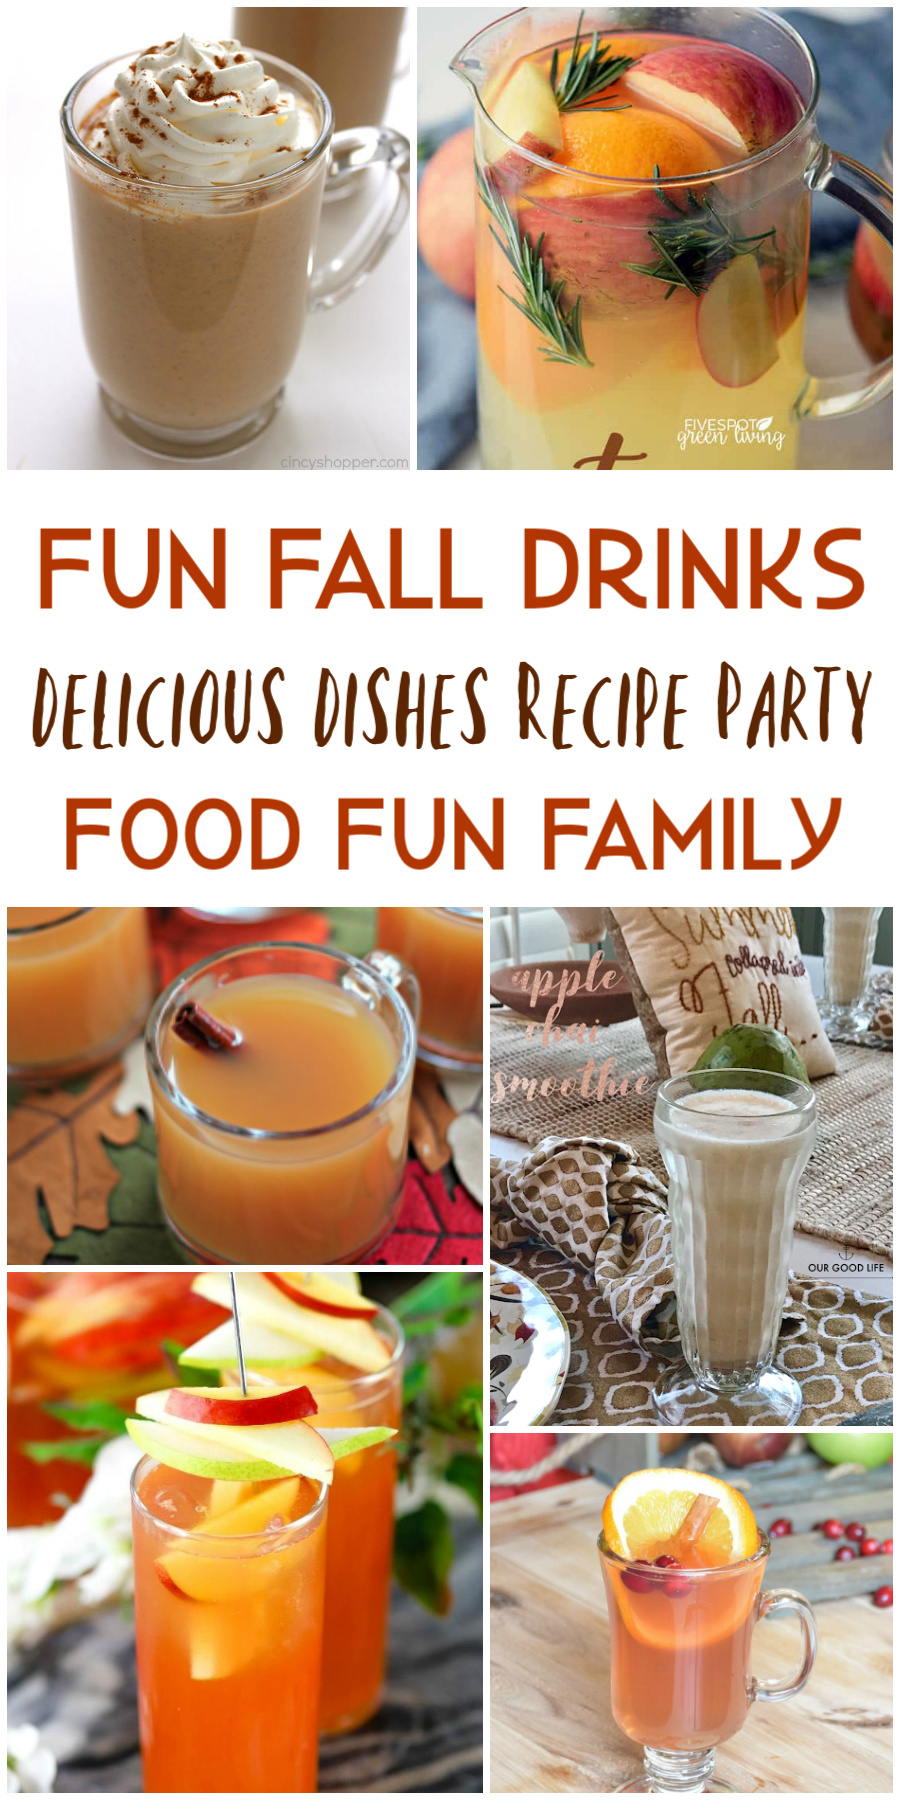 Fun fall drinks (family-friendly!) - a Delicious Dishes Recipe Party from Food Fun Family